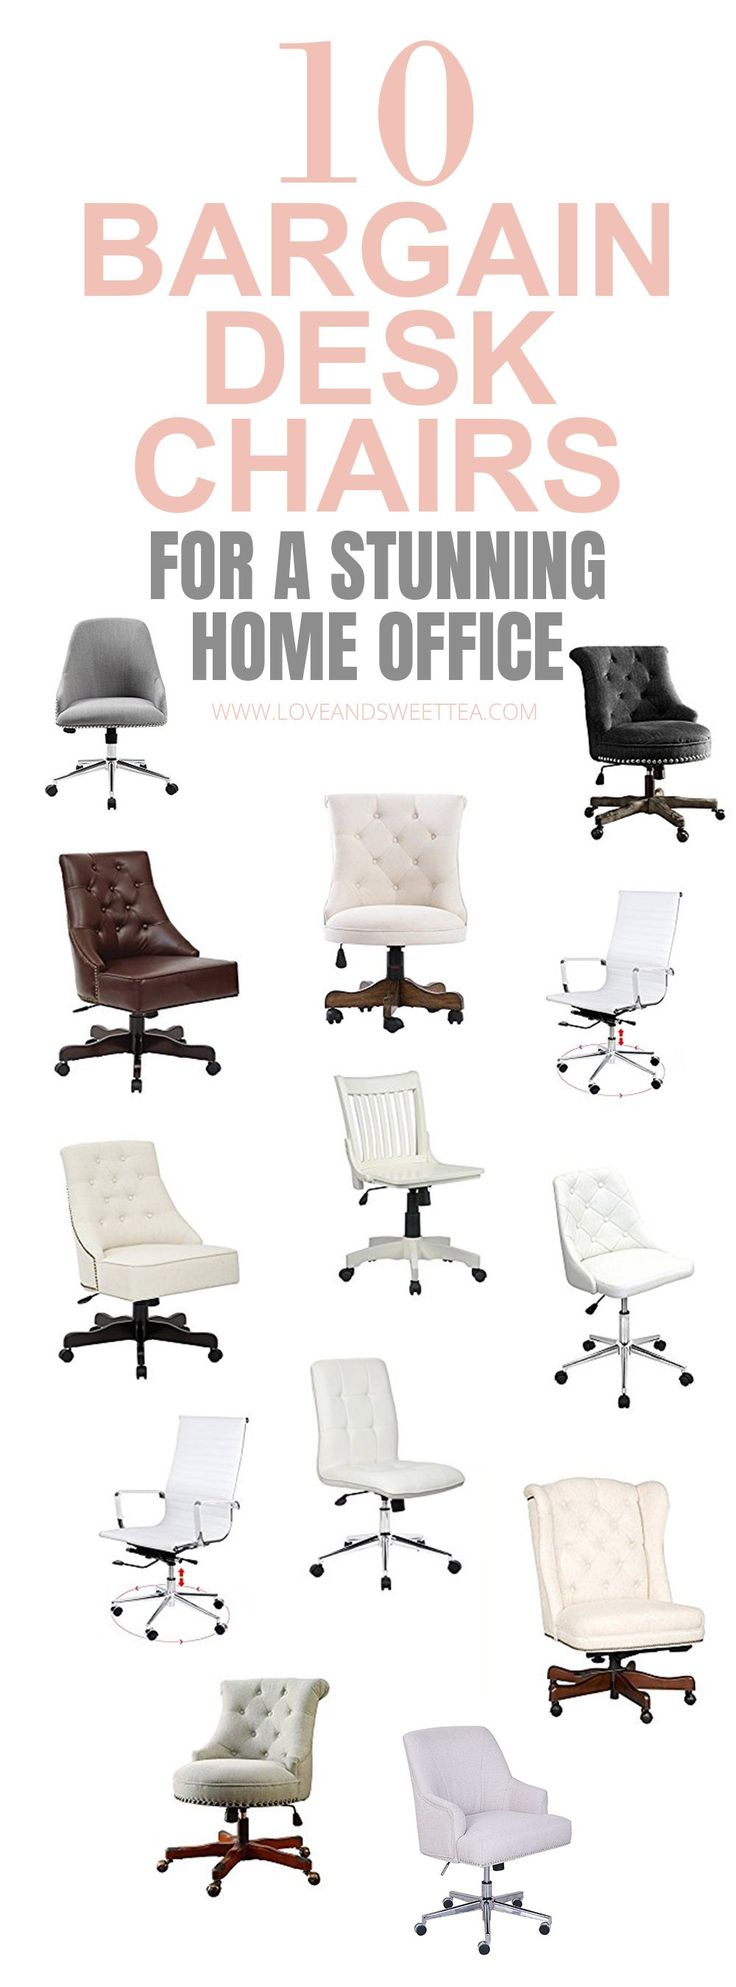 Add those two things together (pretty desk chair + comfy desk chair), and you bet I'm doing some intense shopping around for my next desk chair! I thought I'd compile a list of some of my favorite feminine desk chairs to save you some time on the hunt. (Because, let's be honest, I'm all about staying productive and meeting your goals!!) The best part? My budget is as low as possible, so all these desk chairs are under $250! Awesome right? I know! Click on over to see what I found!